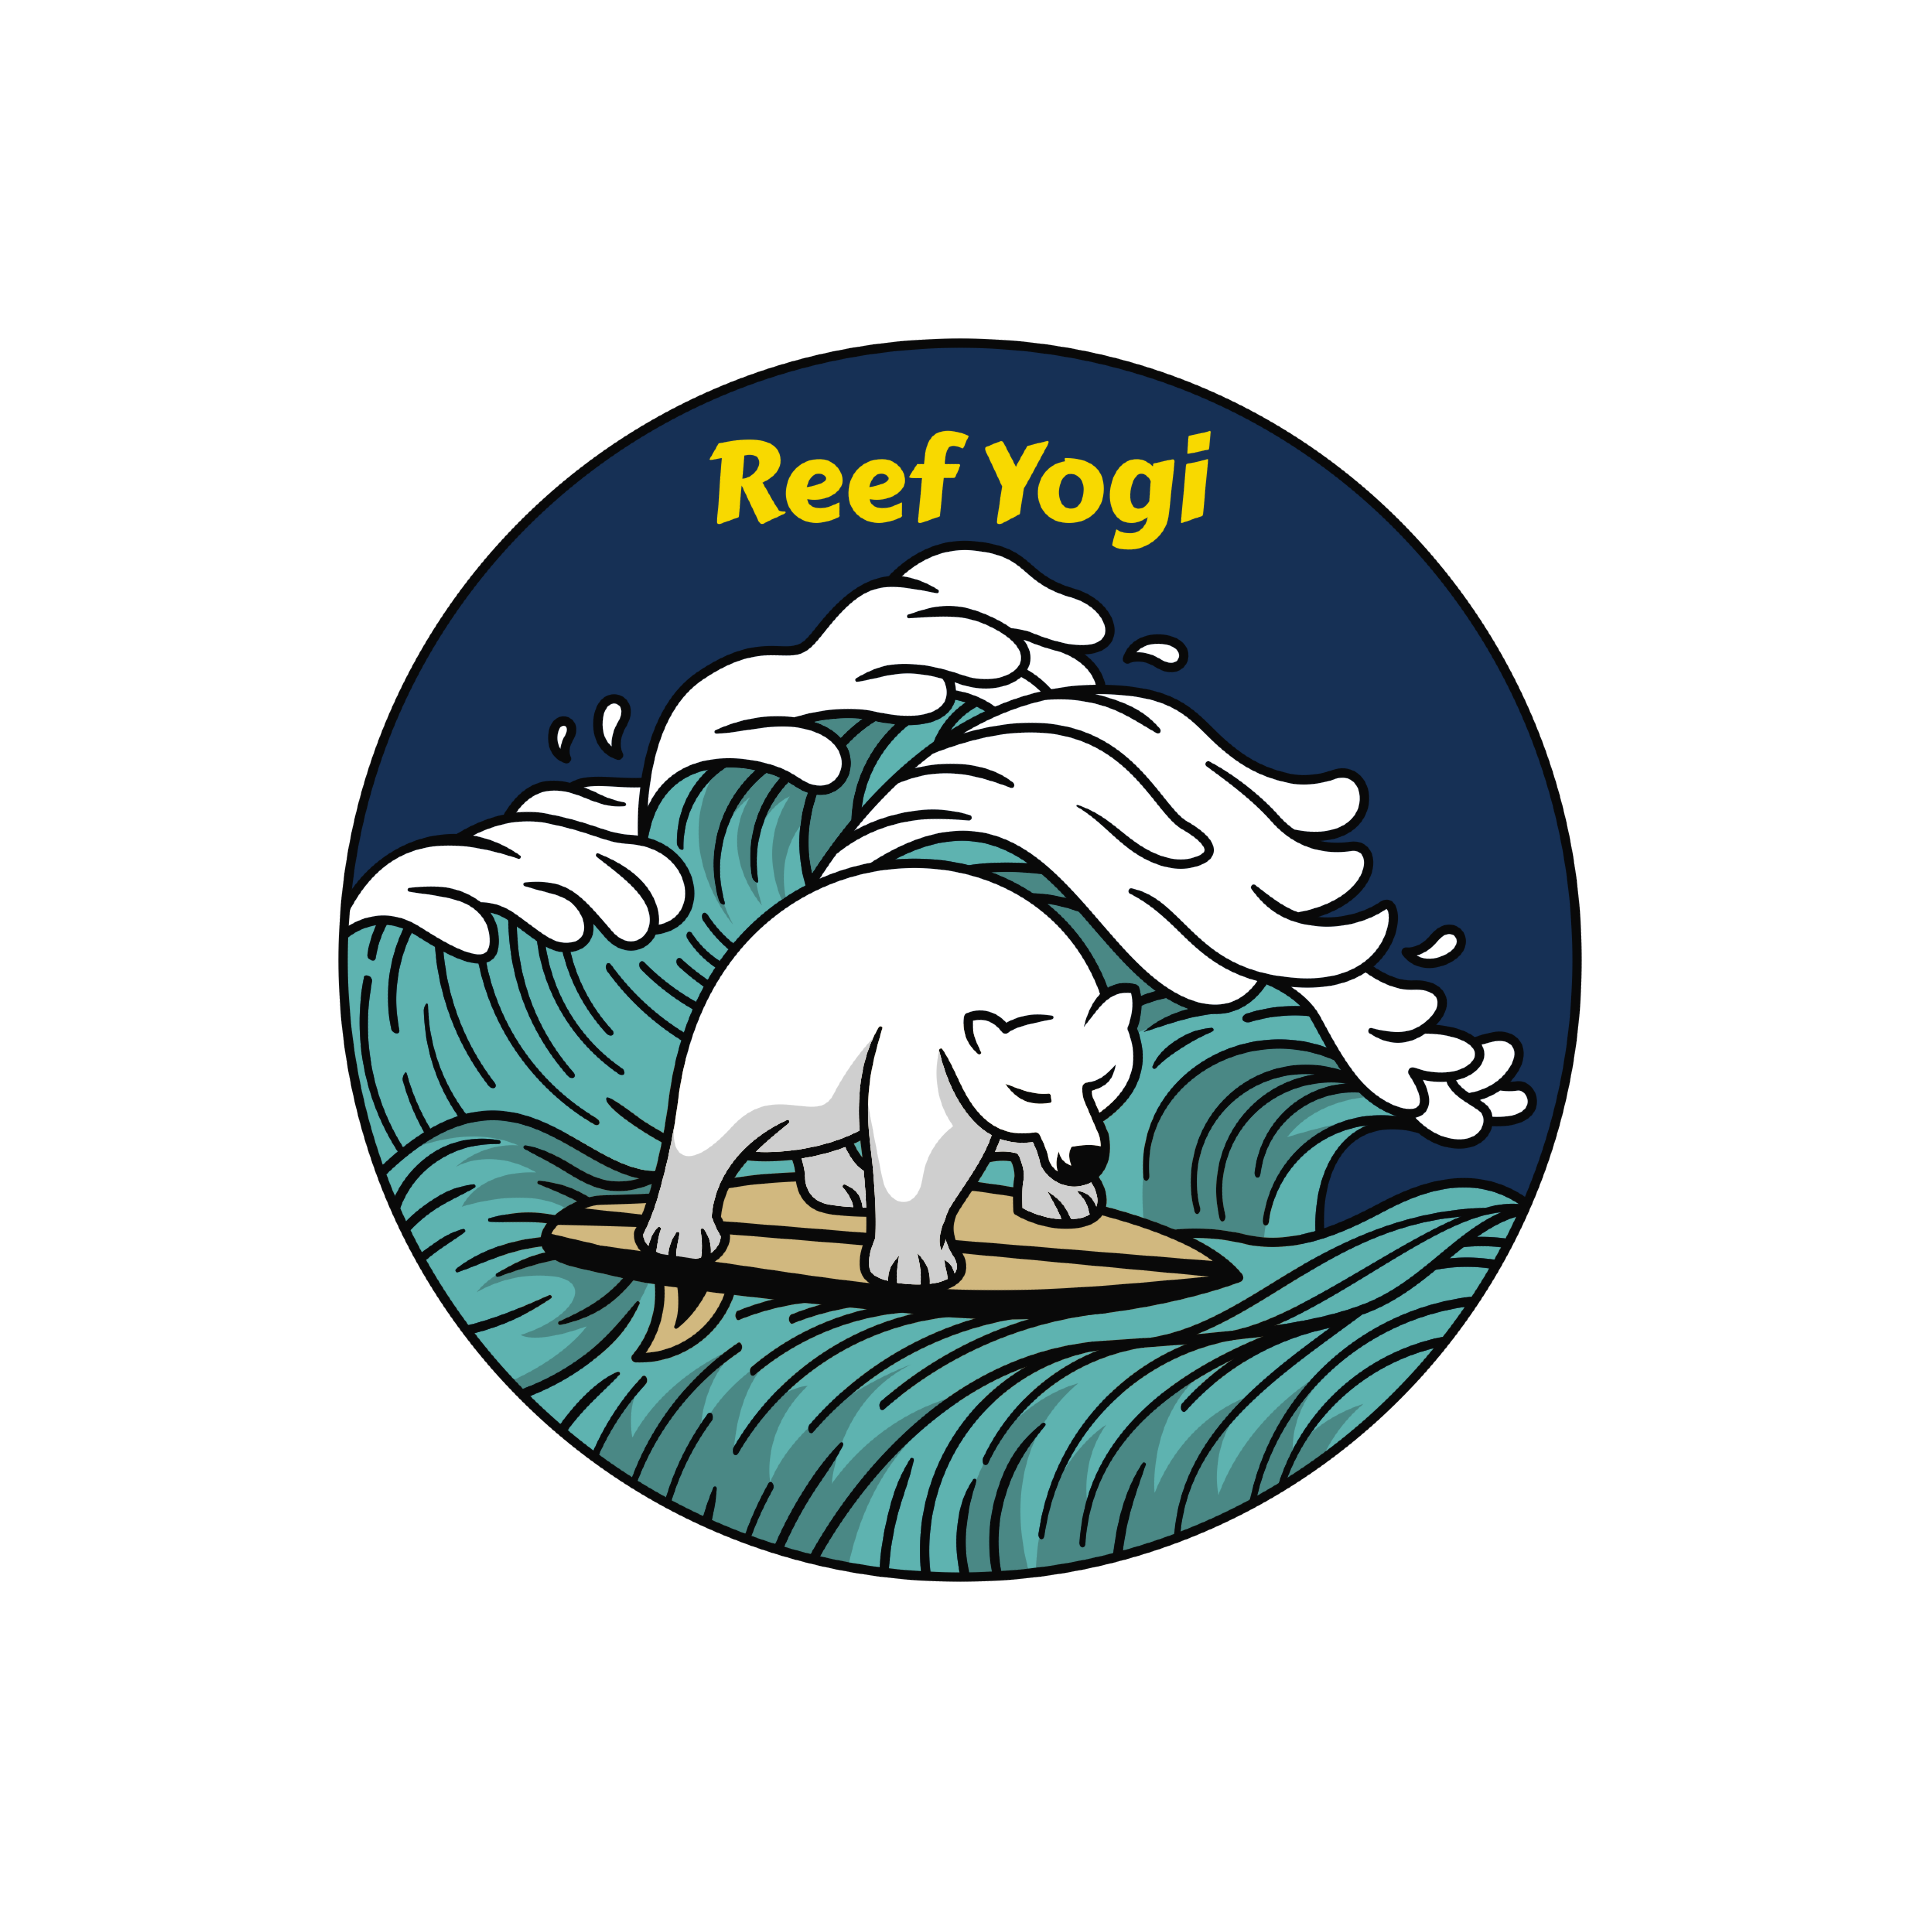 Reef Yogi Beach Clothing Logo of a white bear riding s surf board